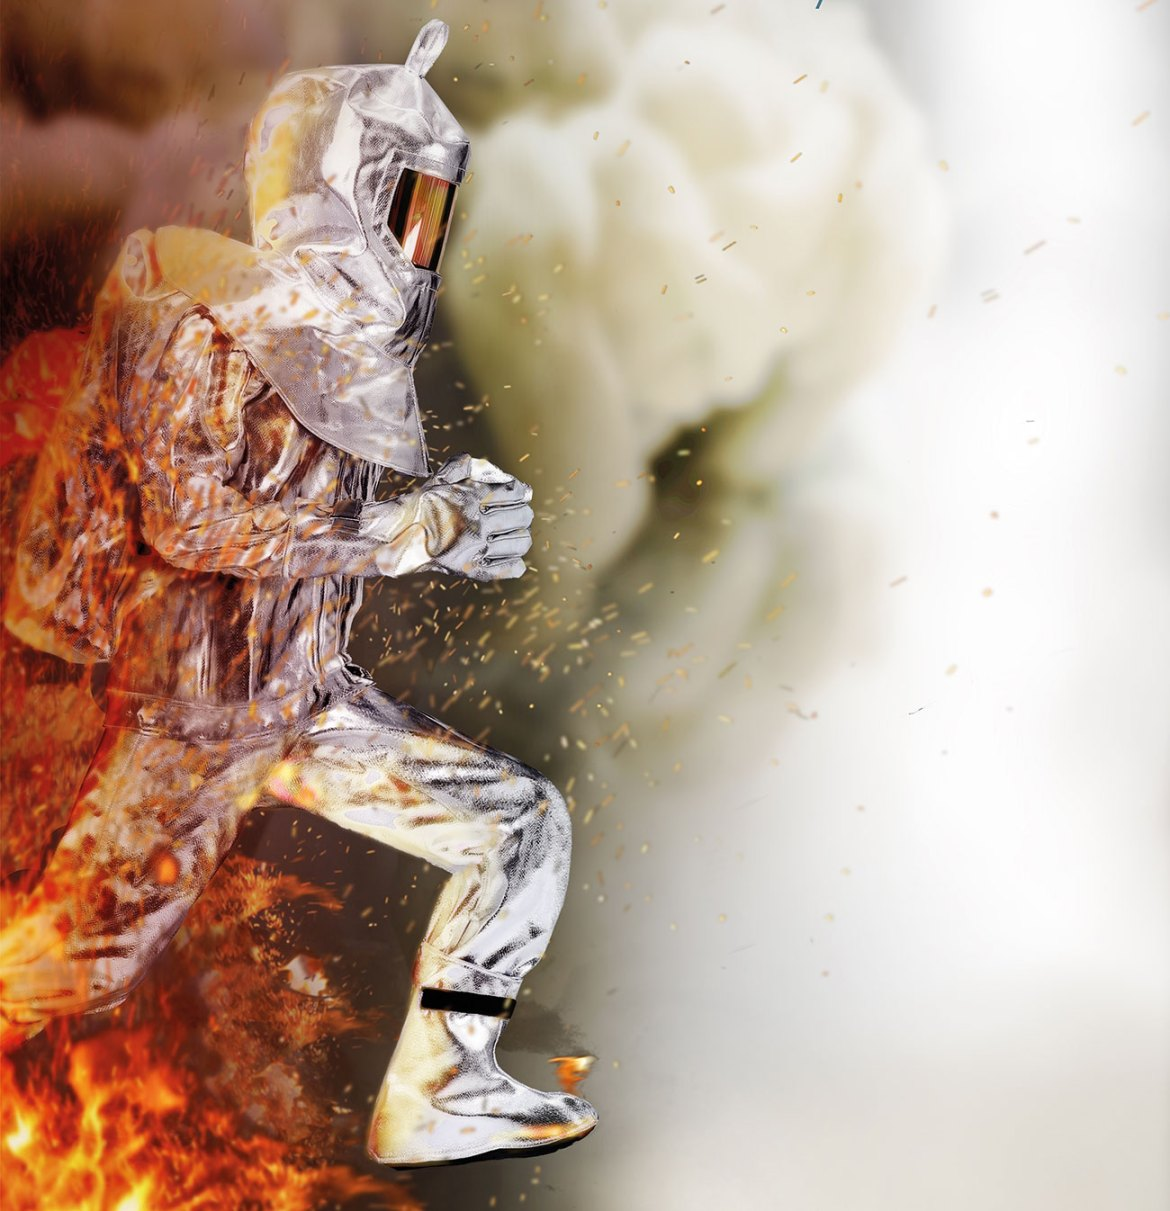 FIRESHIELD is a multi-layered fabric complex designed to offer high radiant heat protection level without sacrificing mobility.